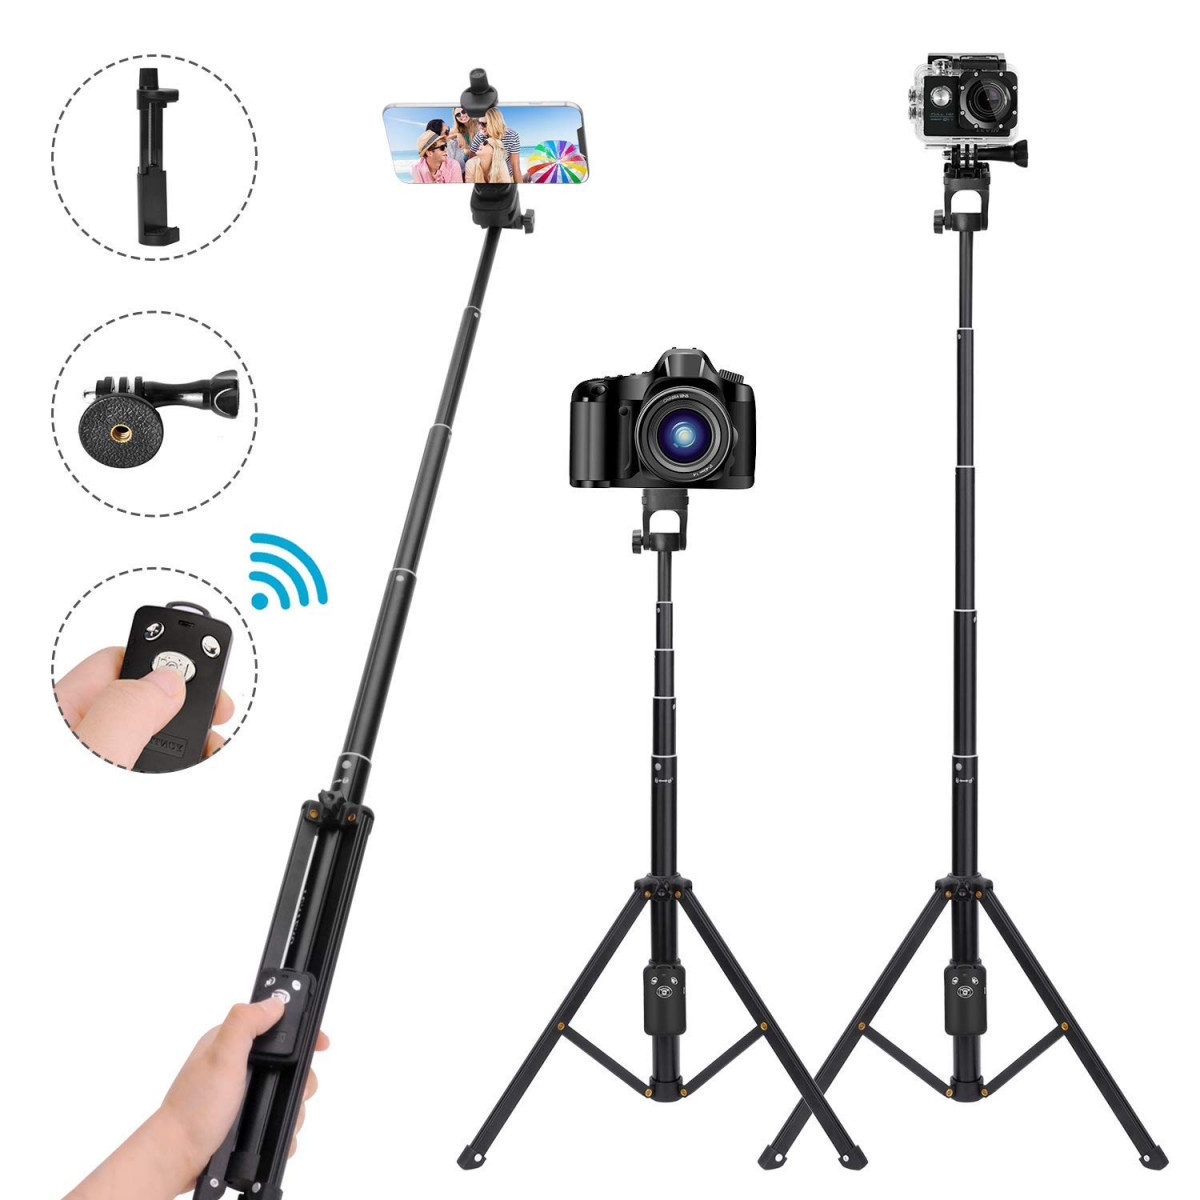 innovative design cfa79 d7c31 Selfie Stick Tripod,54 Inch Extendable Camera Tripod for  Cellphone,Bluetooth Remote for Apple and Android Devices,Suitable for  iPhone 6 7 8 X ...